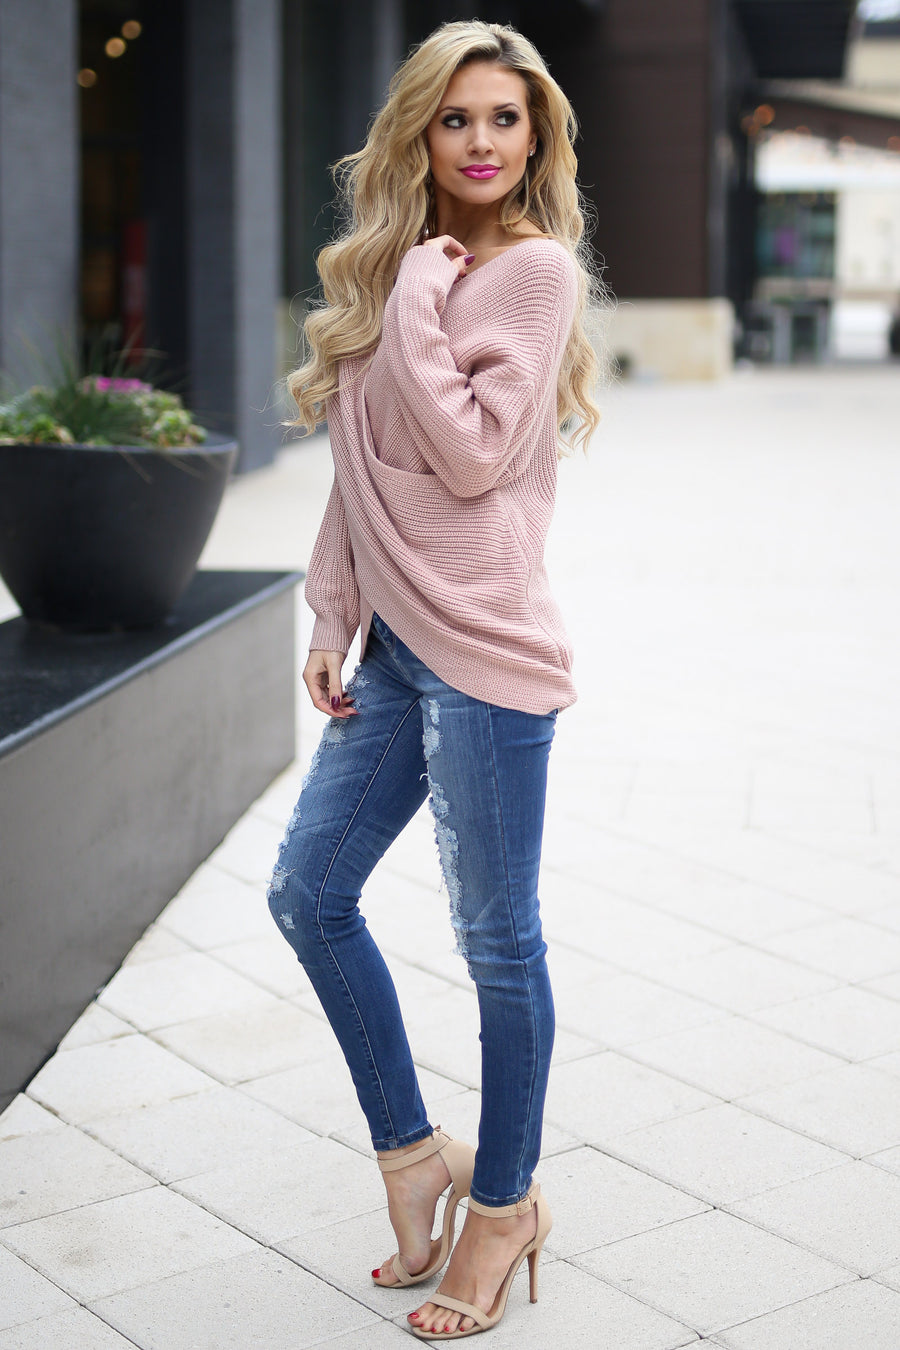 Take My Word For It Sweater - cute blush surplice v-neck sweater, outfit, Closet Candy Boutique